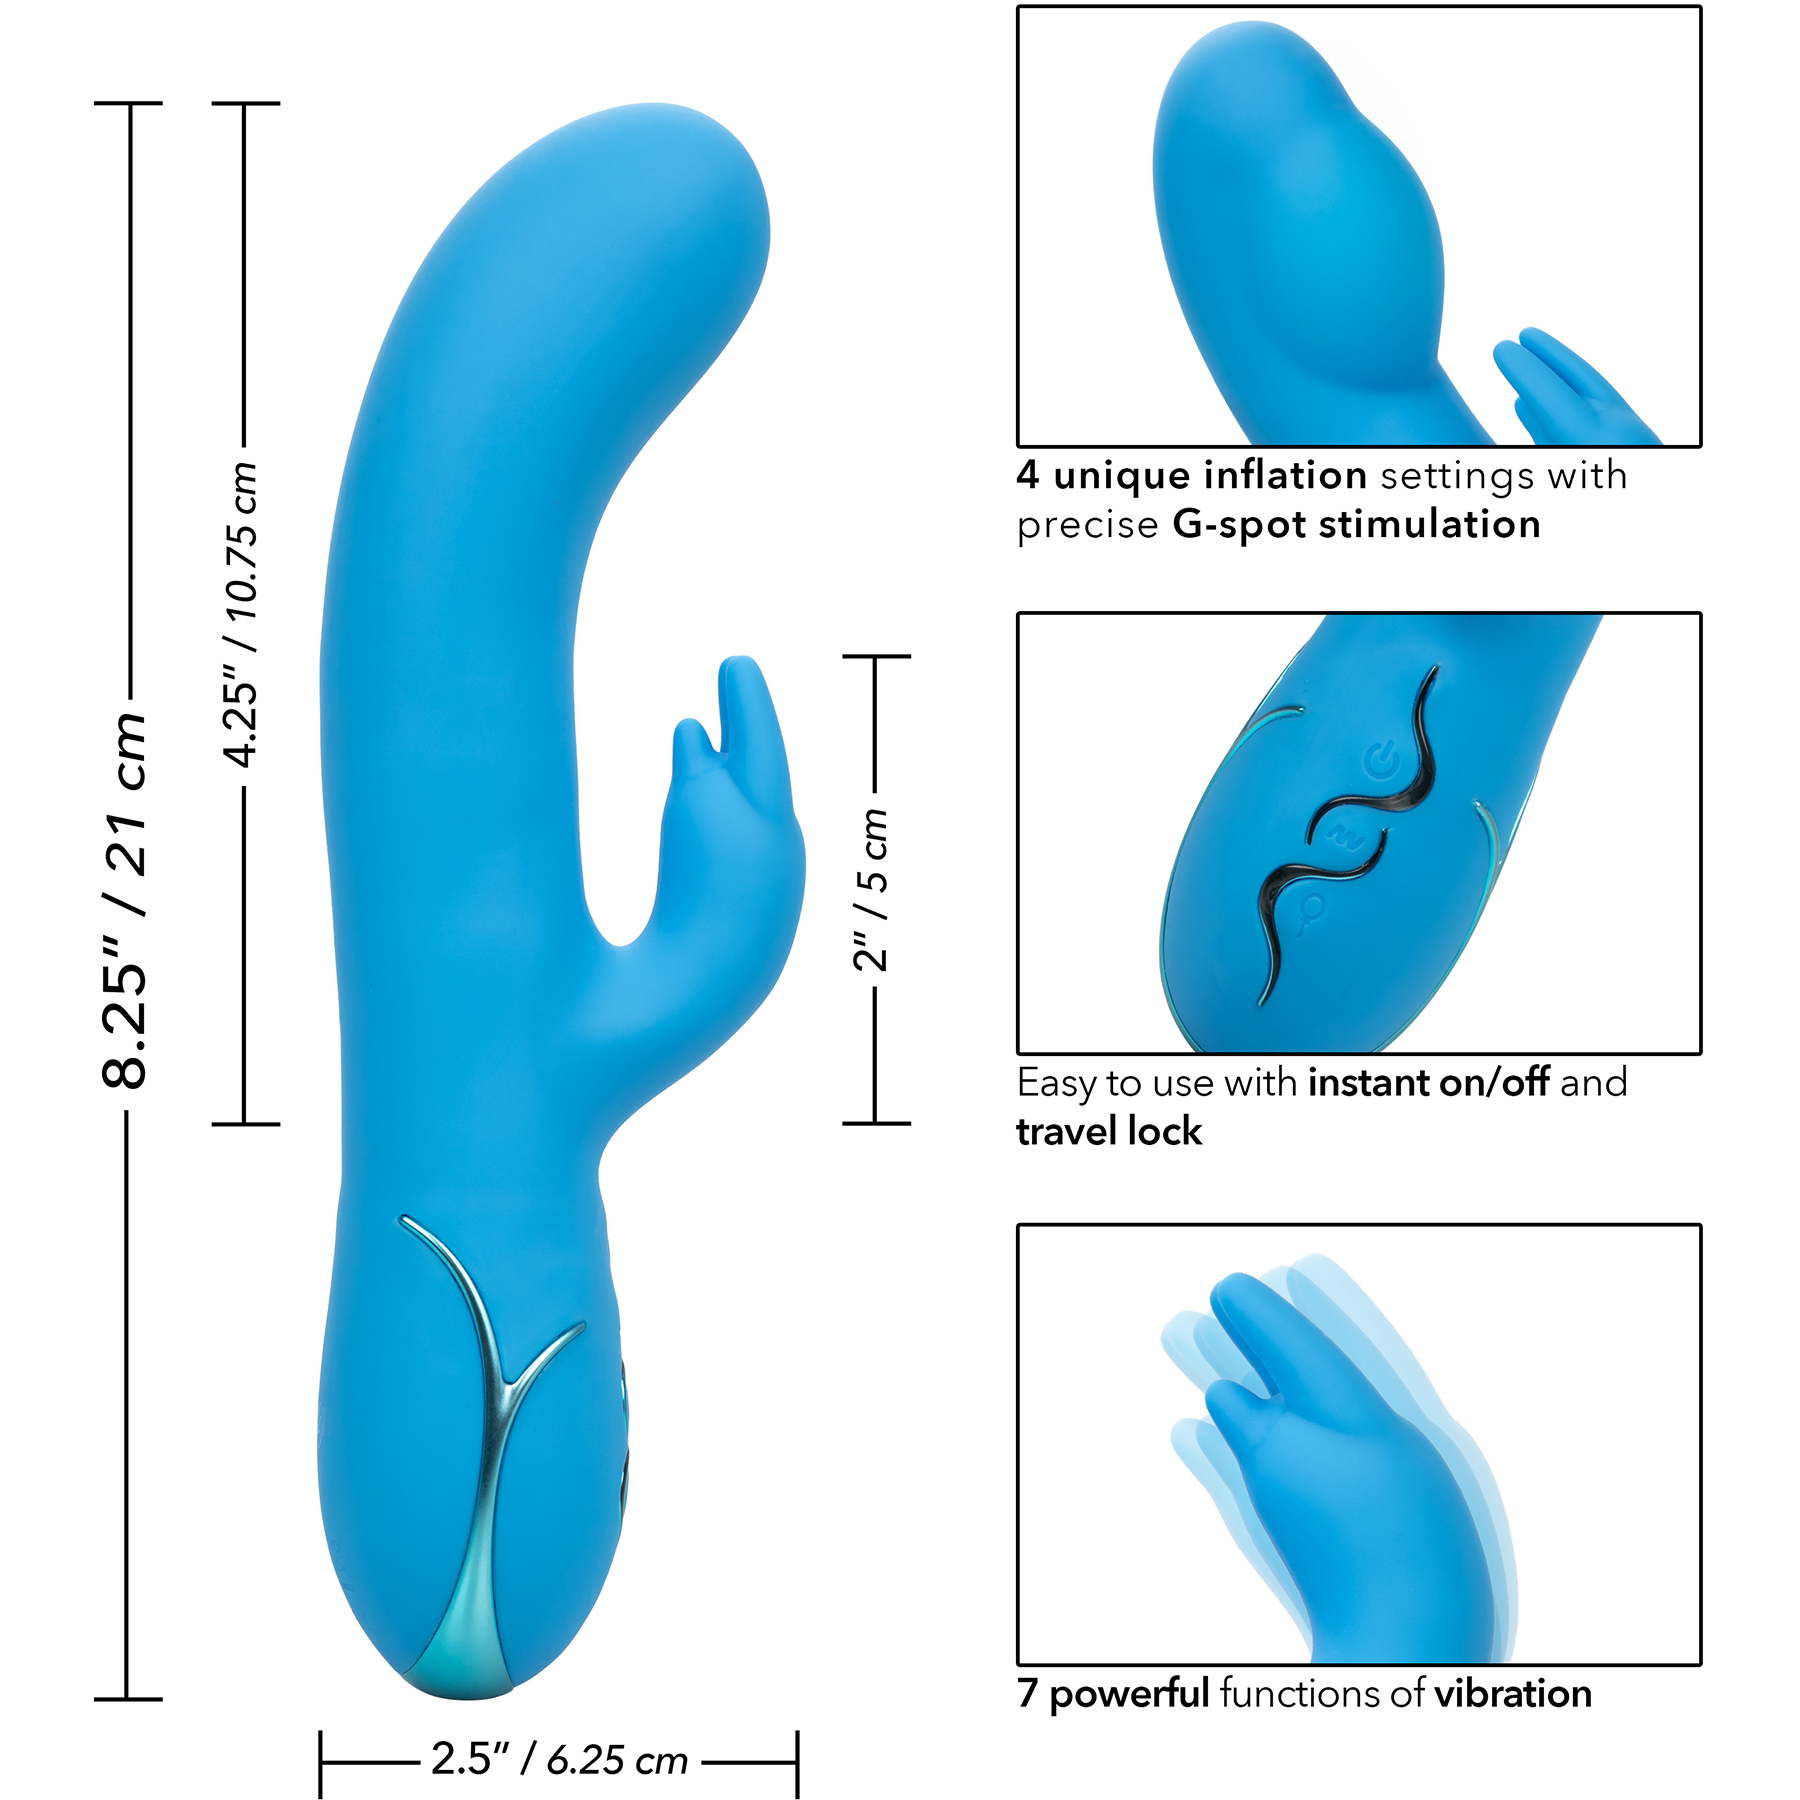 Insatiable G Inflatable G-Bunny Rabbit Style Silicone Vibrator - Measurements